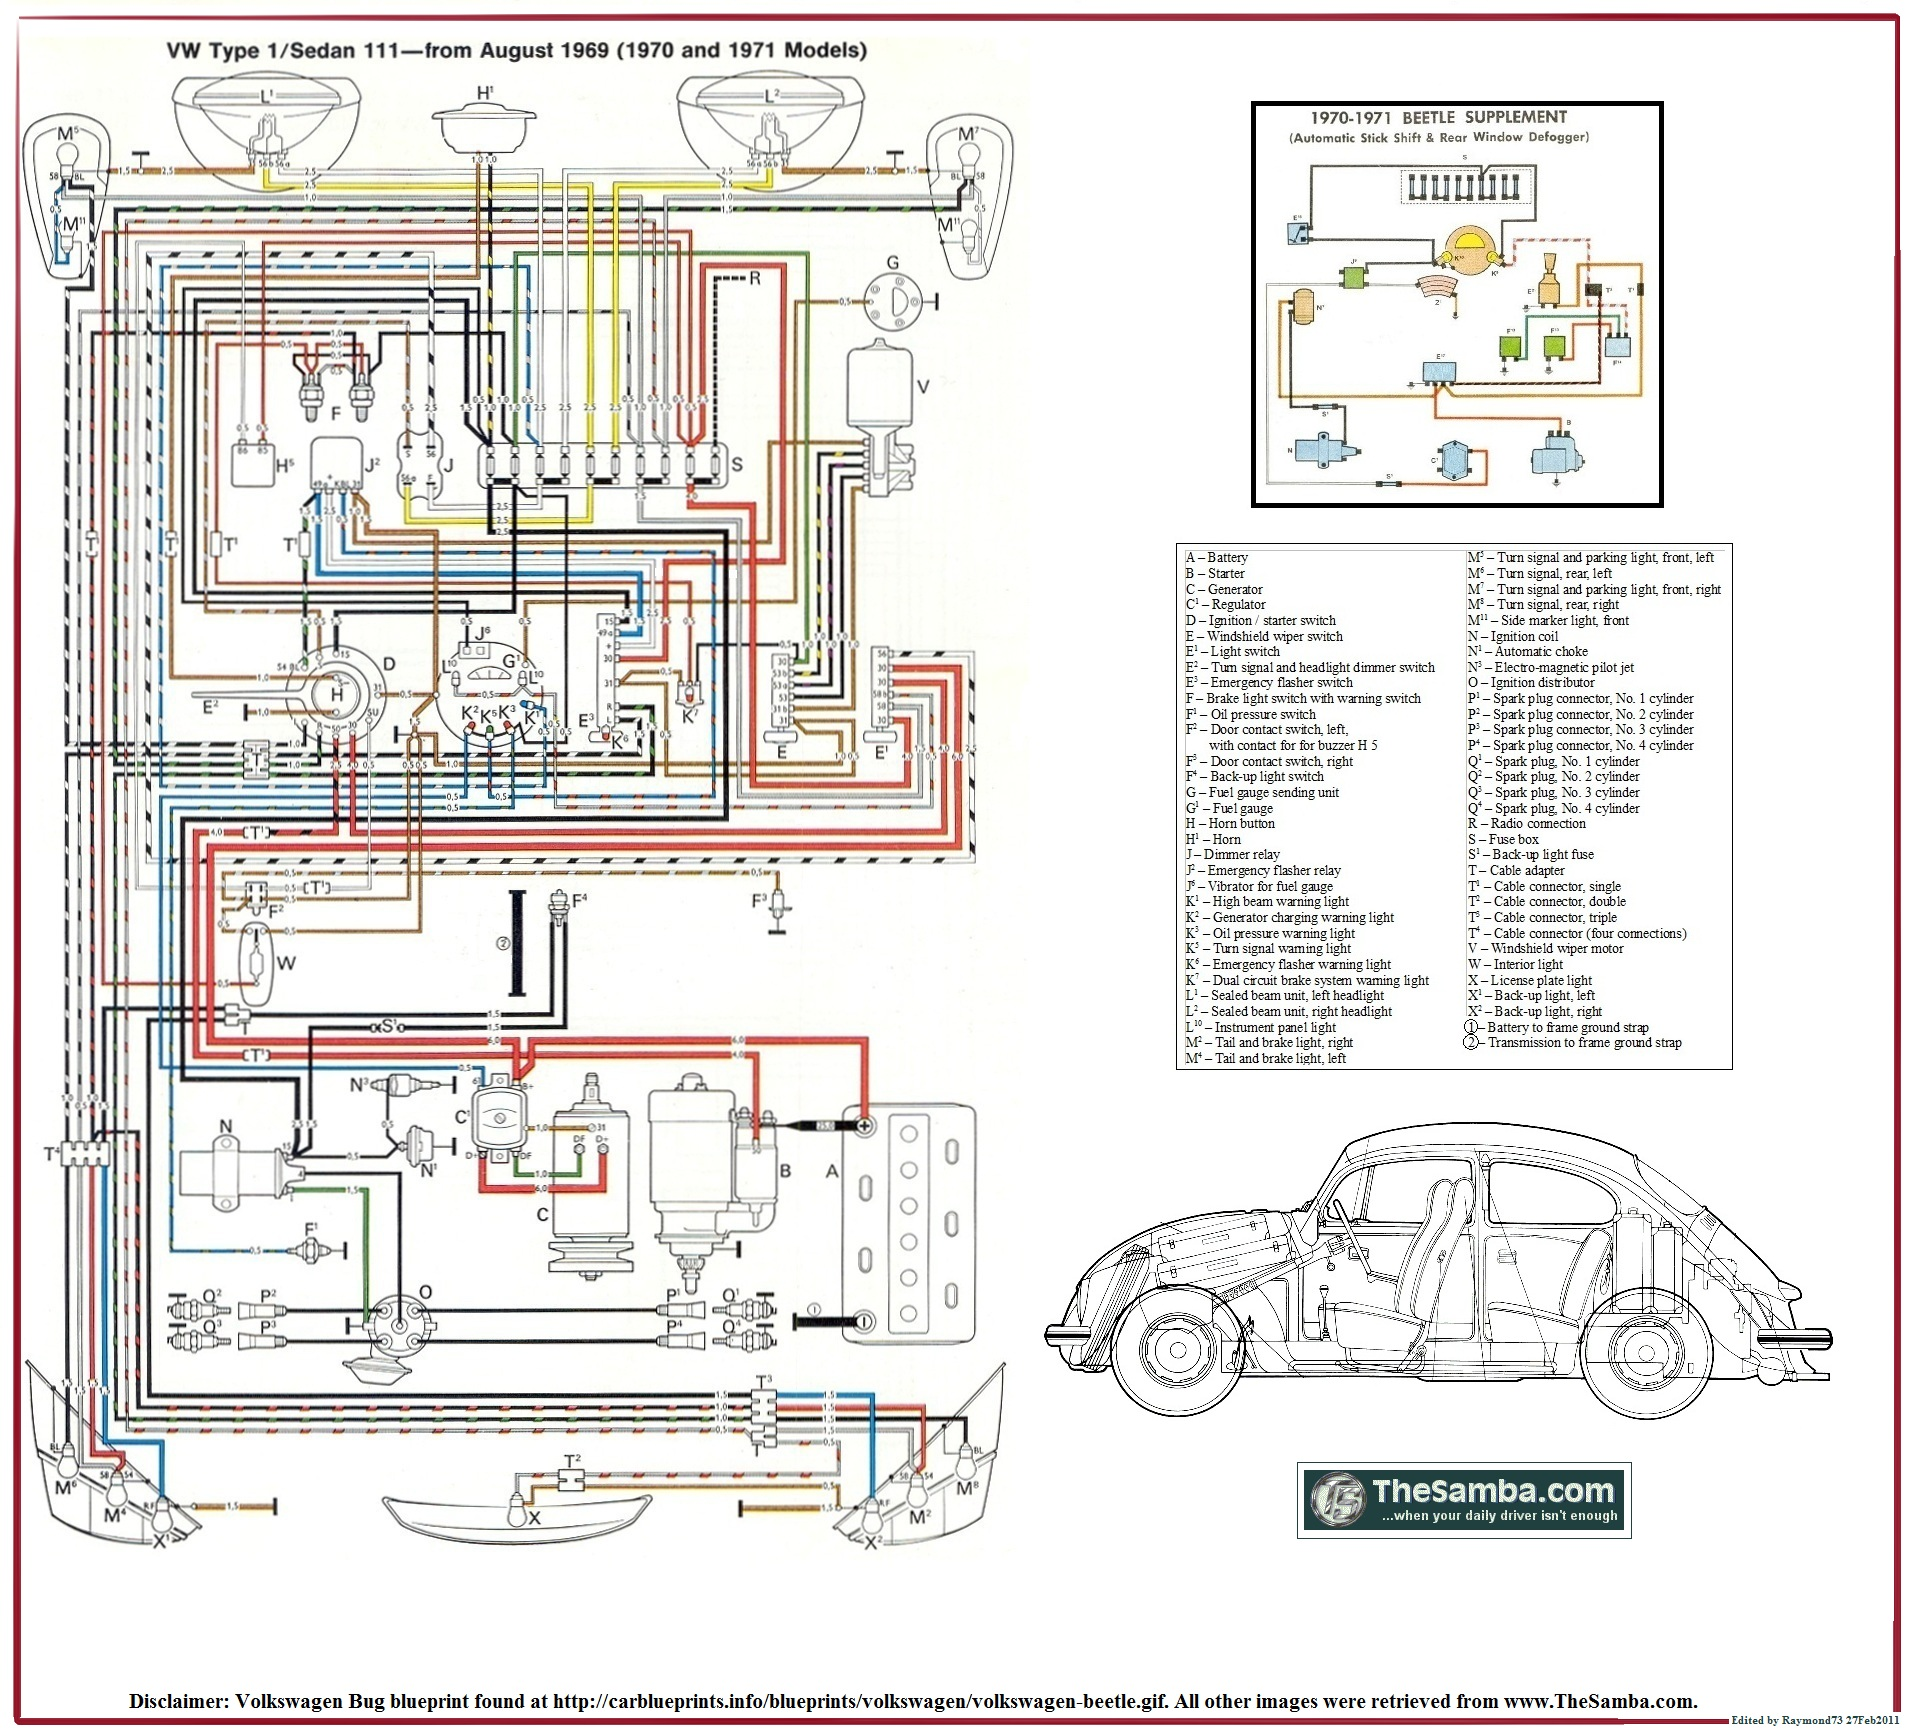 1970 vw beetle wiring harness trusted wiring diagrams u2022 rh sivamuni com 1969 vw beetle wiring 1969 vw beetle wiring harness